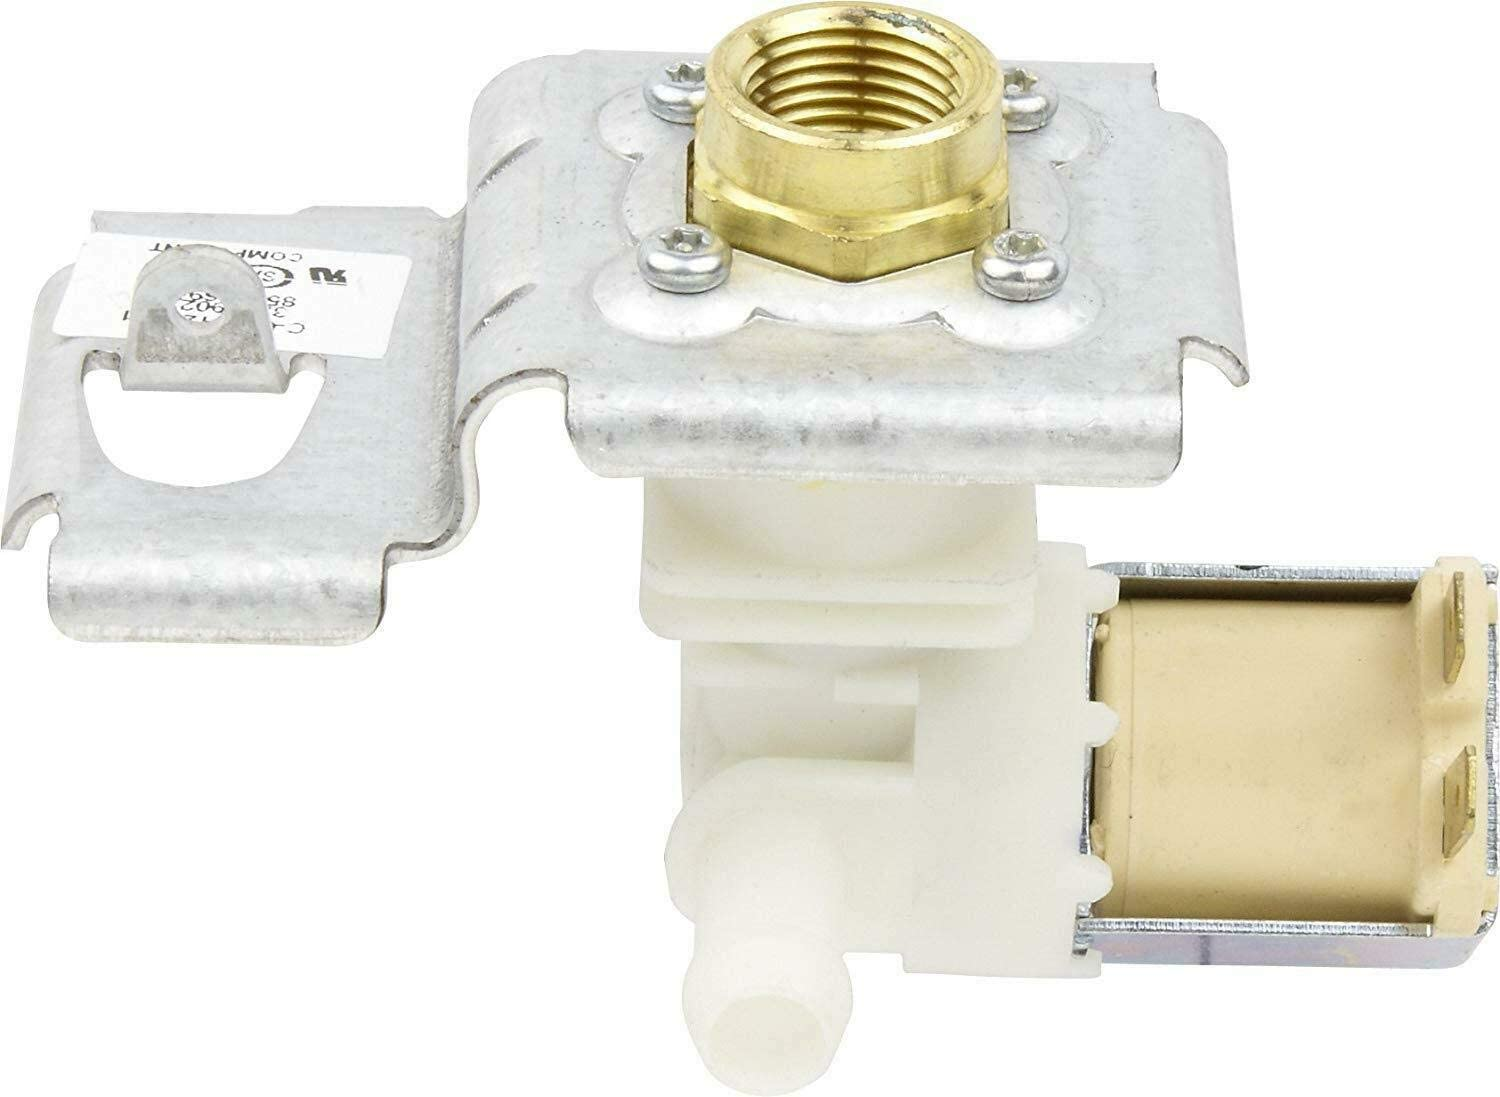 NEW 8531669 Water Valve for Whirlpool Dishwasher made by OEM Manufacturer WP8531669 (AP6012920), 8268572, 8268590, 8528931, 8531351, 8531670, 8531671, PS11746141, WP8531669VP - 1 YEAR WARRANTY